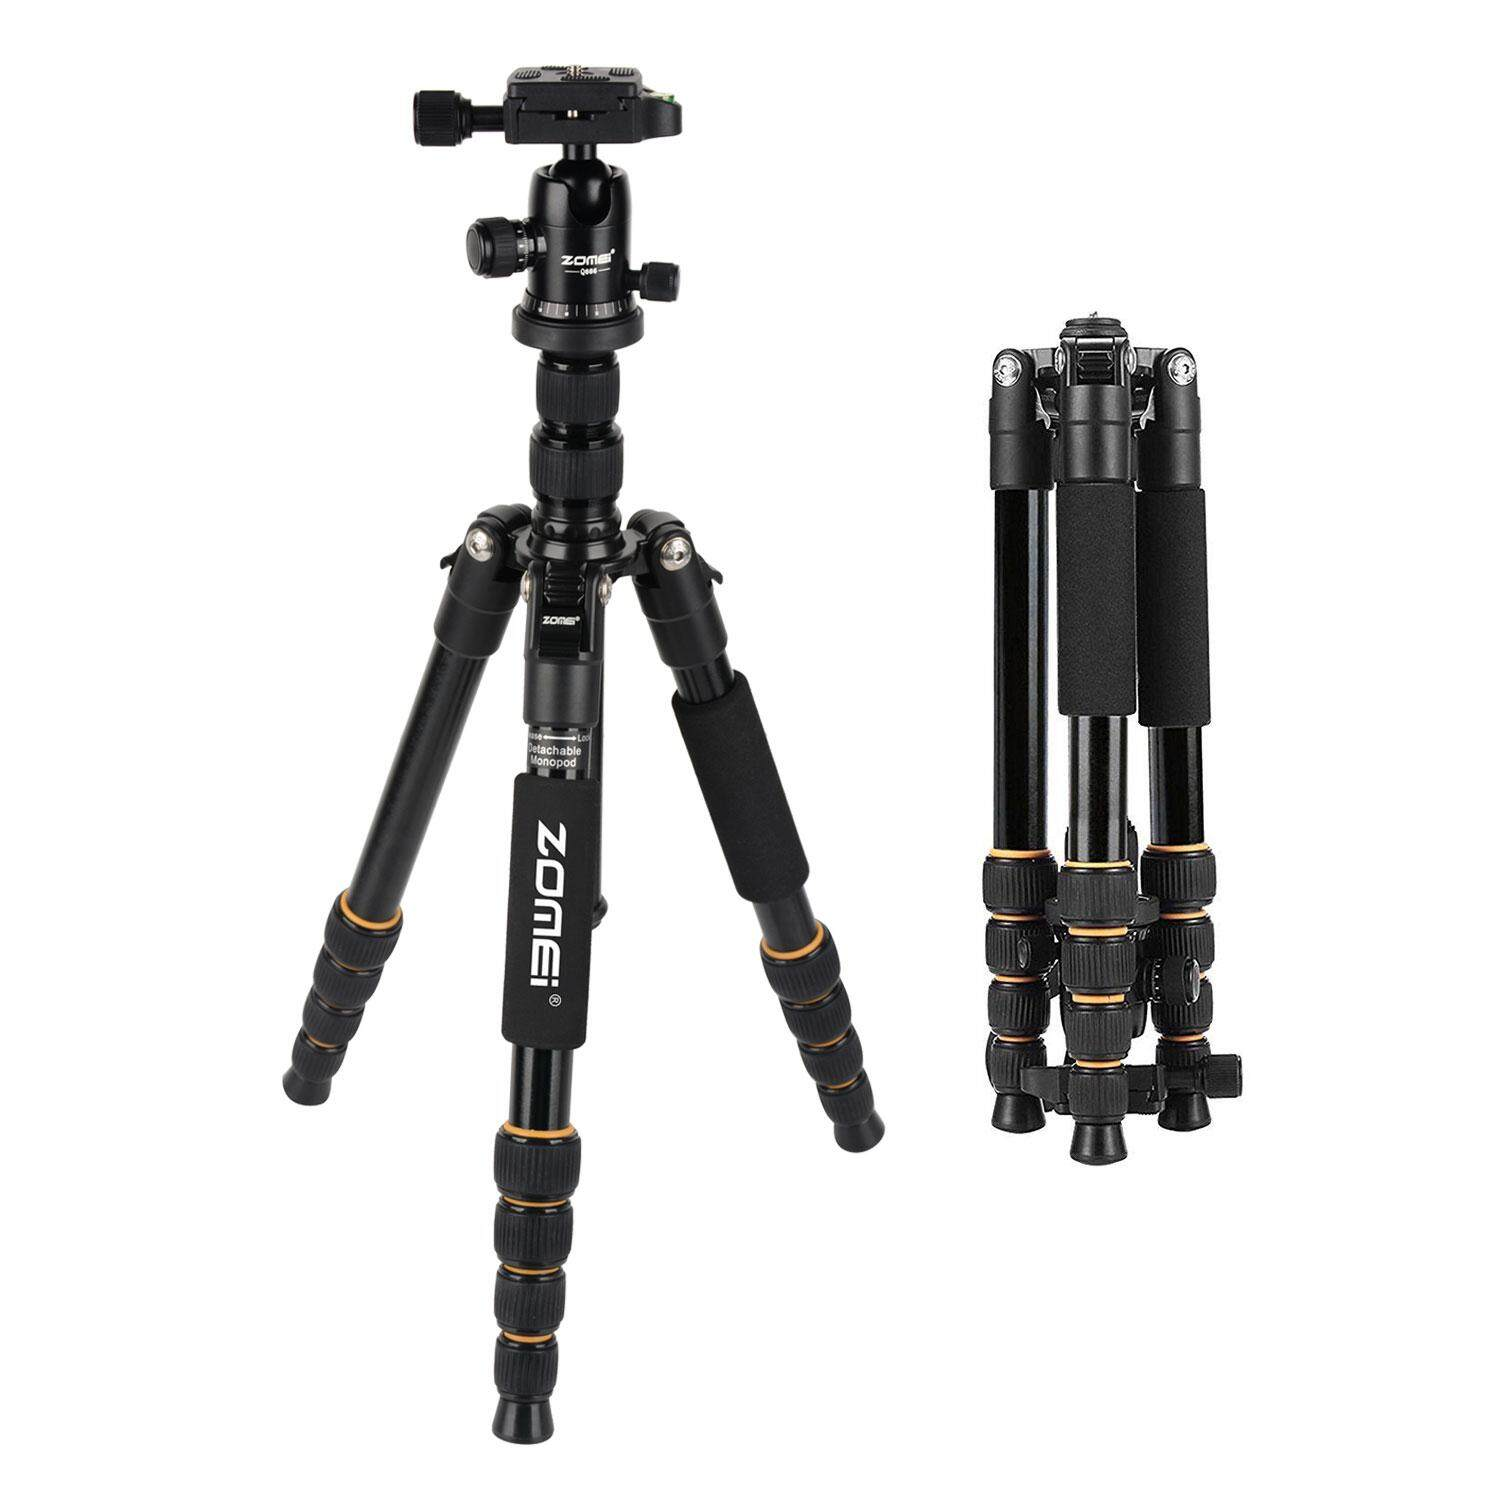 GoodScool Portable 180 Degree Reversible,ZOMEI Q666 Proline Retractable Tripod With Ball Head For Any Camera, Camcorder, DSLR, Mirrorless Or Point-and-shoot Camera